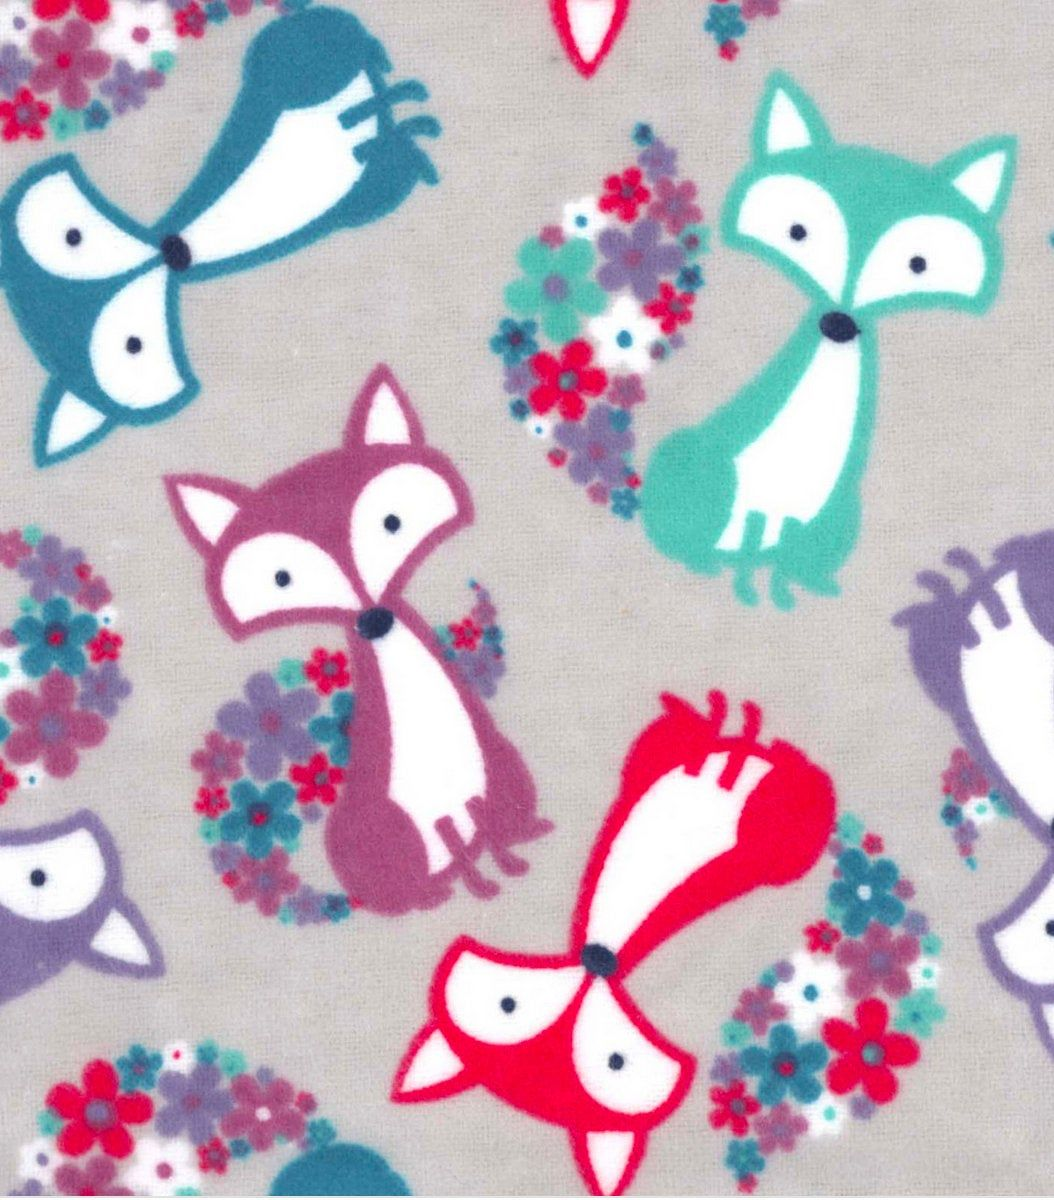 Blooming Foxes Fabric By The Yard 100 Cotton Flannel Fabric Etsy In 2020 Fox Fabric Flannel Fabric Snuggle Fabric